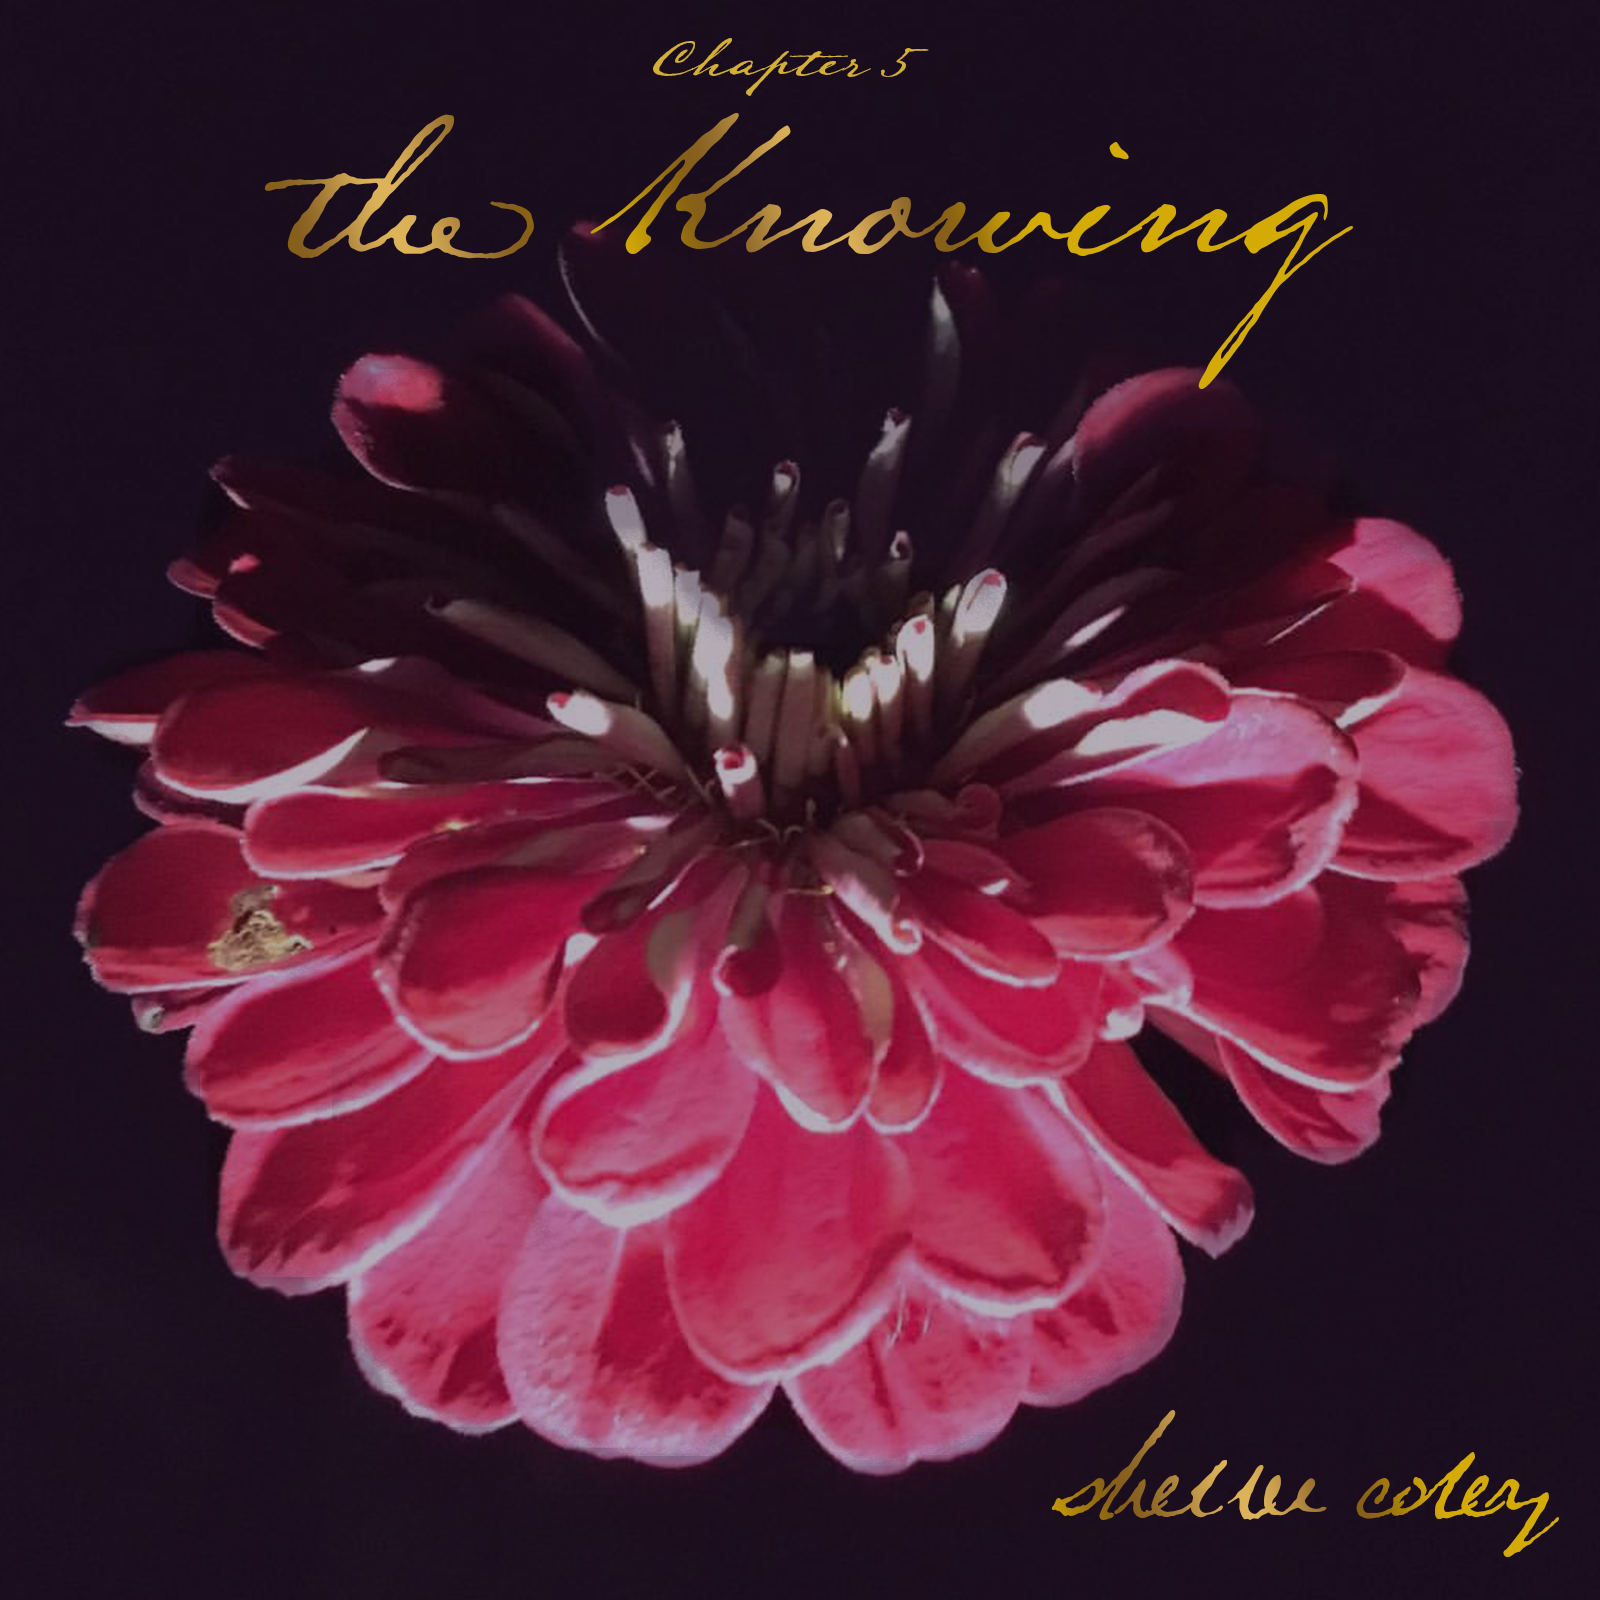 Stream  The Knowing  on Spotify